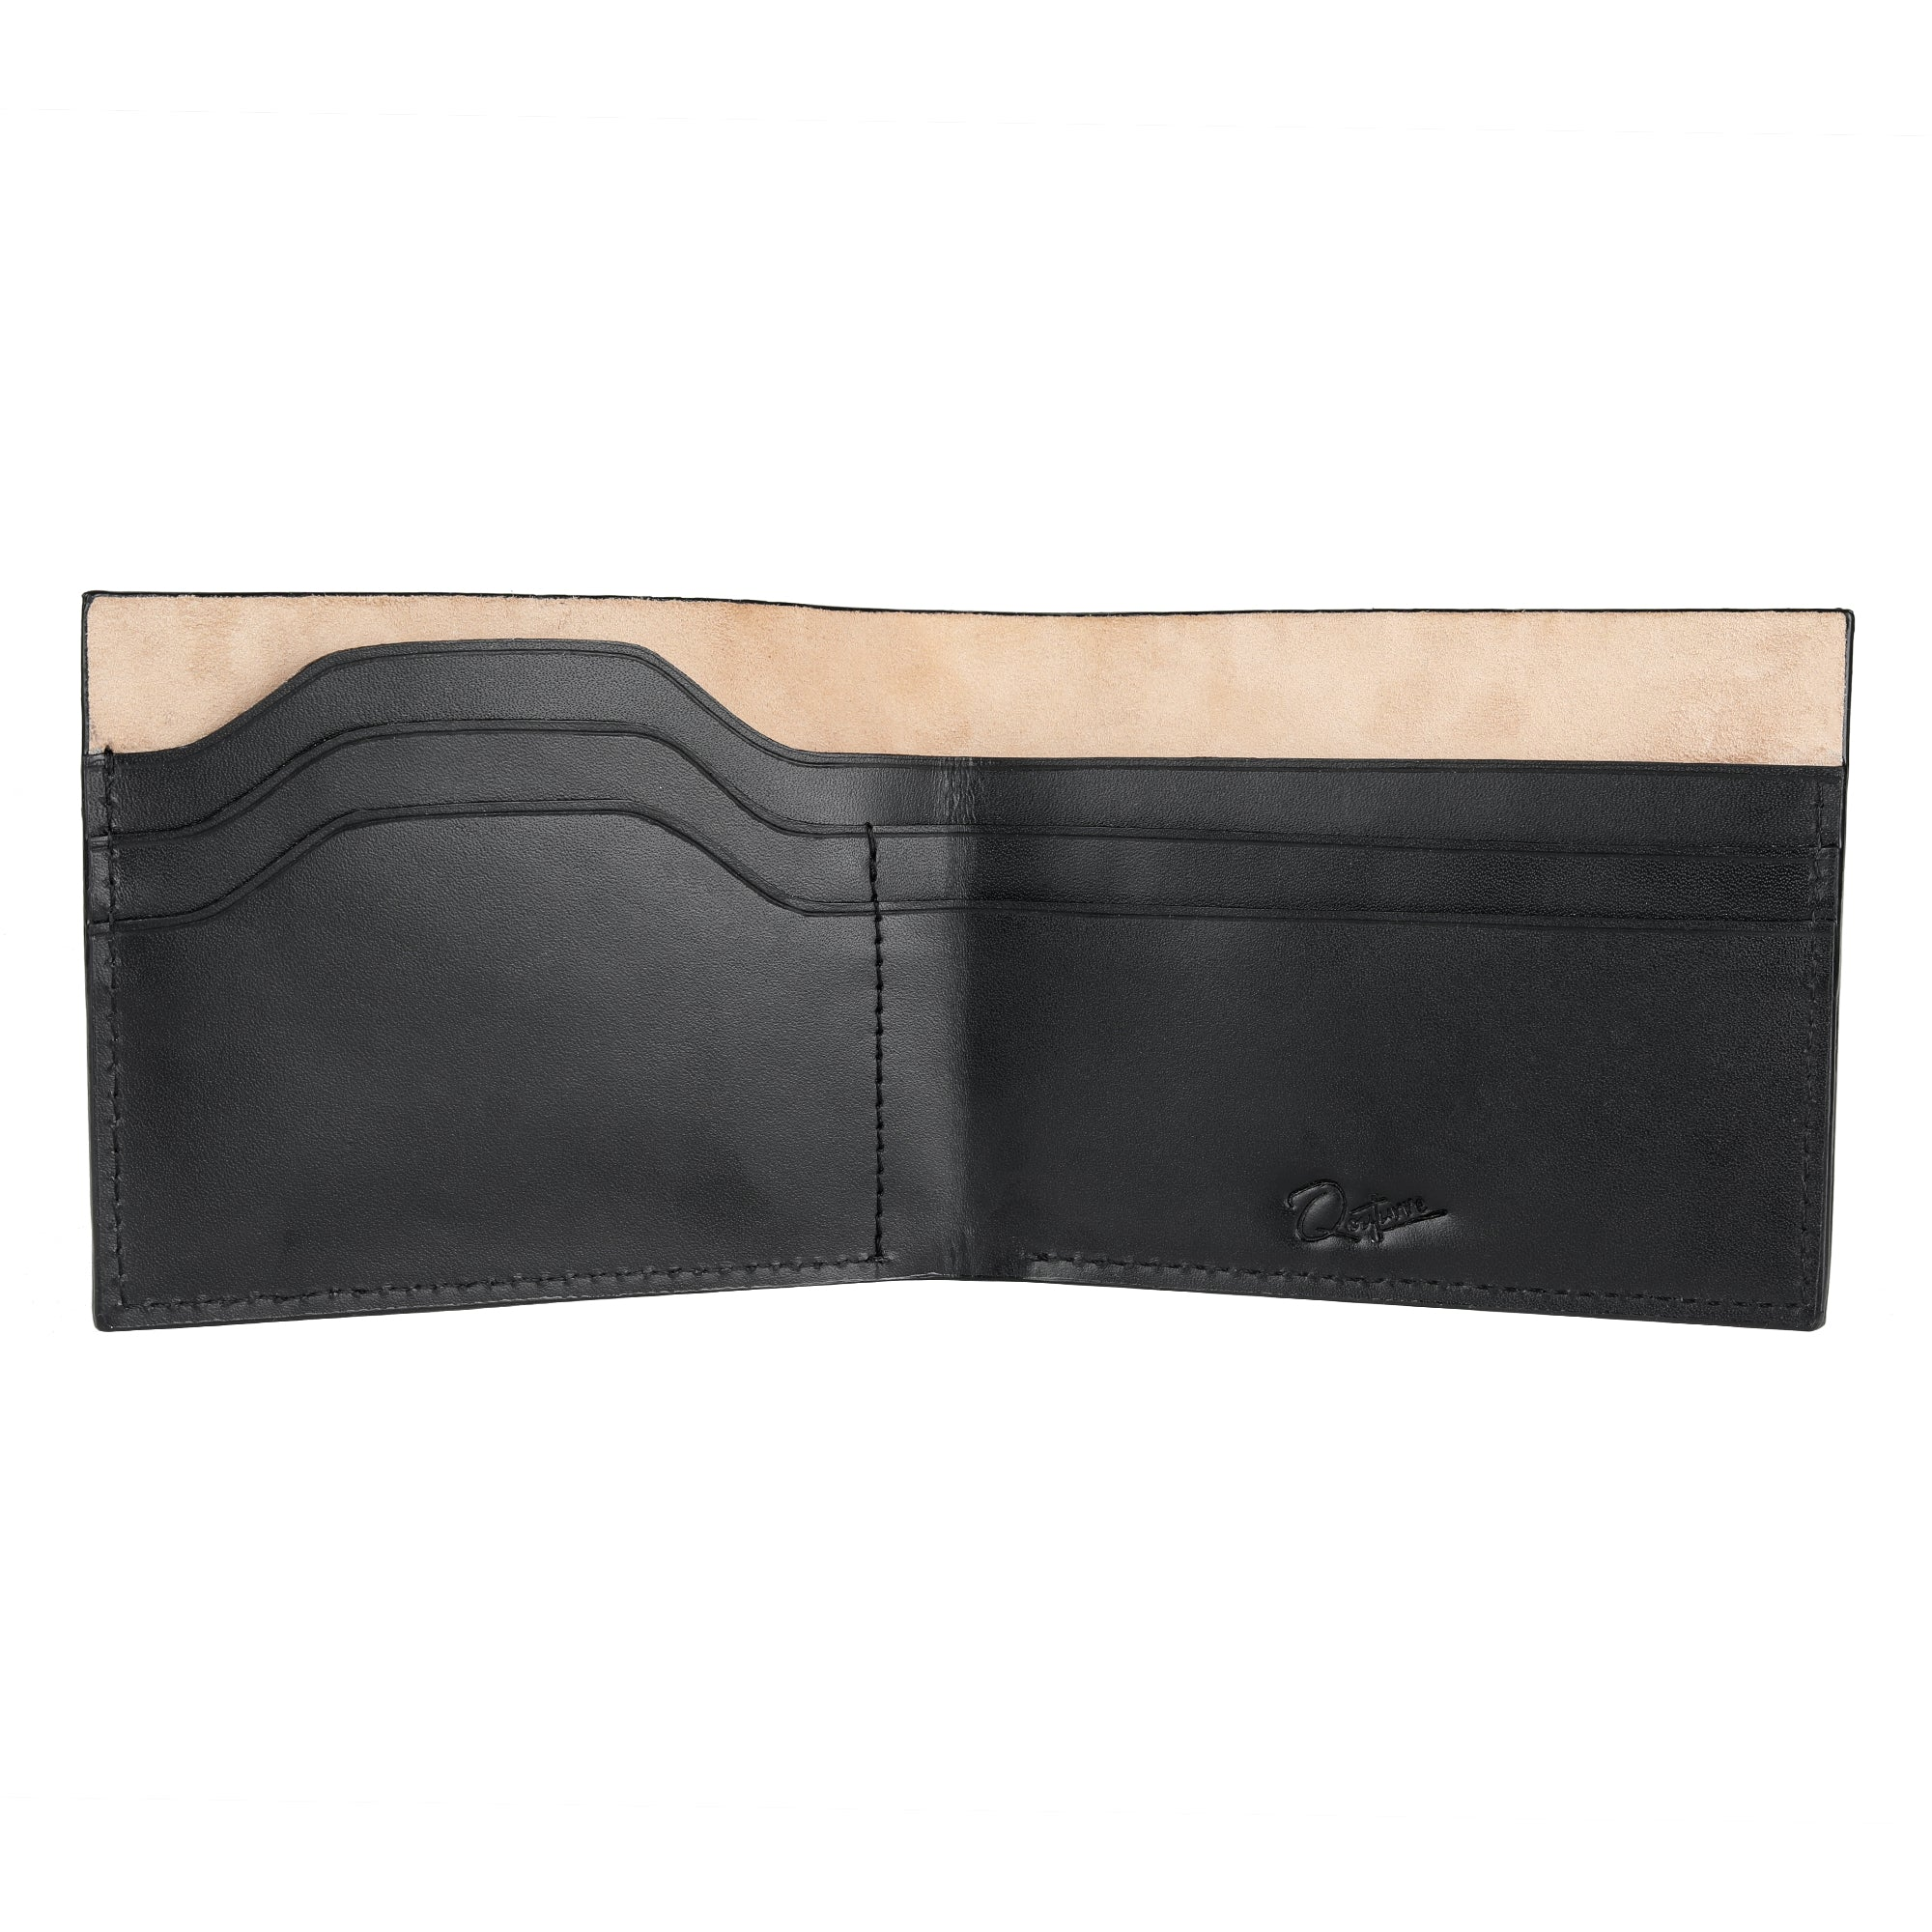 Slim Leather wallet | Luxurious | Black leather wallet